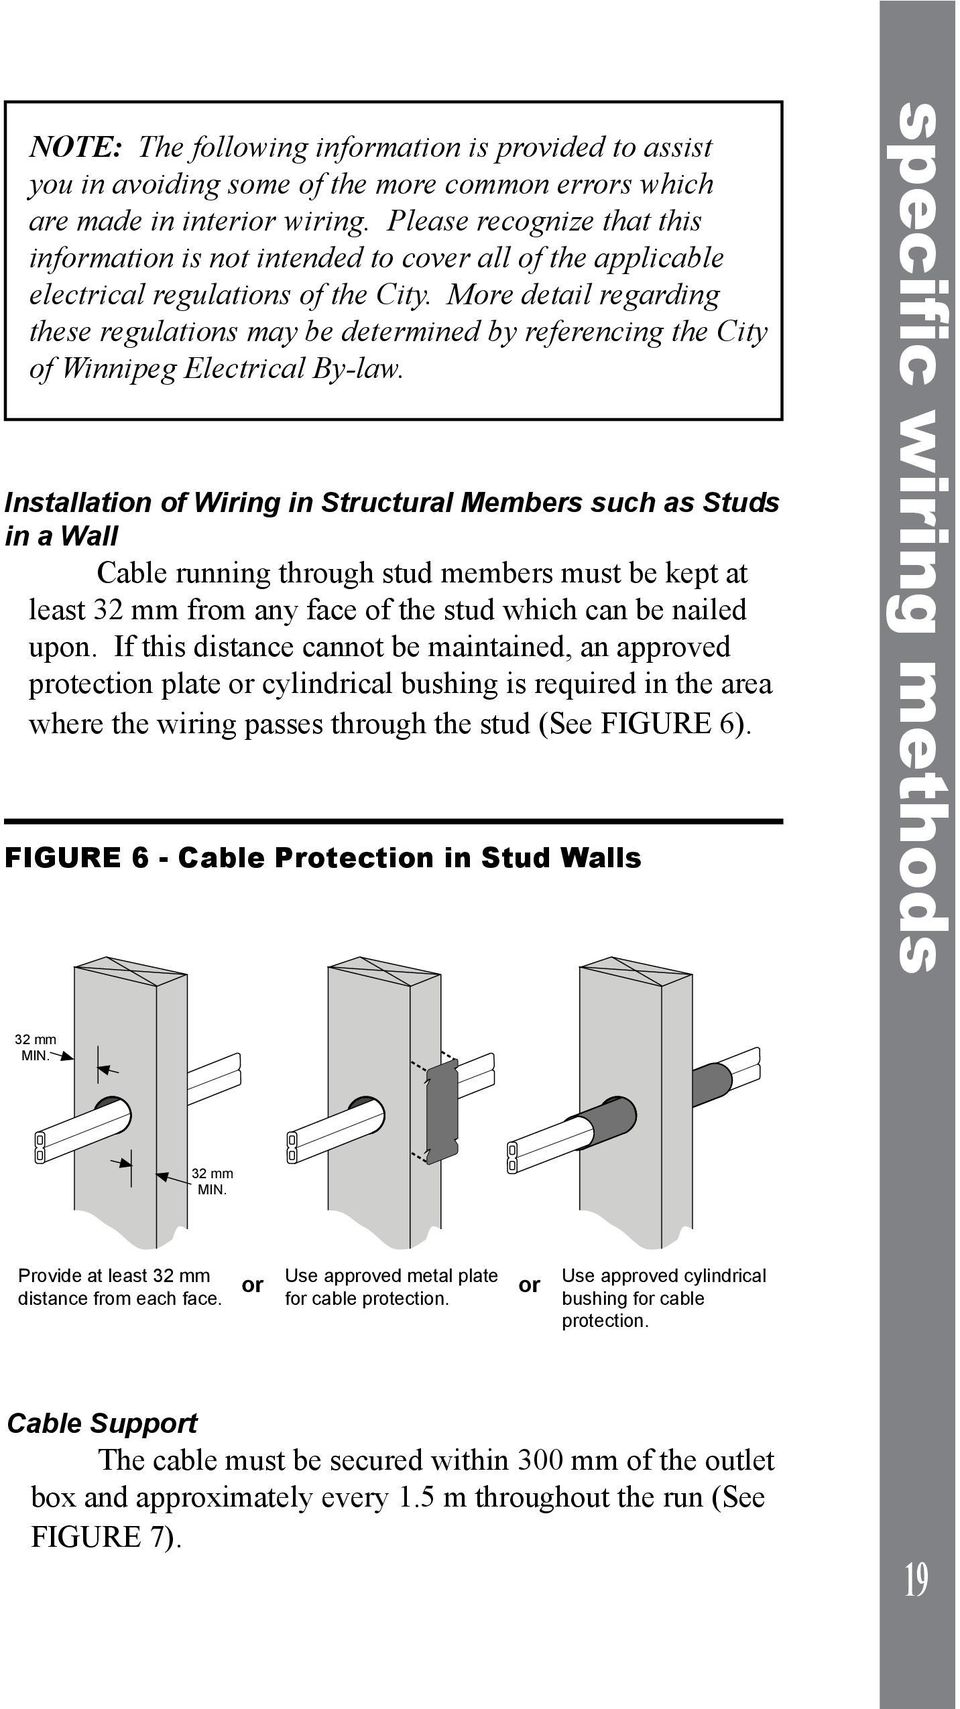 Electrical Installations A Homeowner Guide To The Winnipeg Electric Baseboard Wiring Diagrams 120 6feet More Detail Regarding These Regulations May Be Determined By Referencing City Of